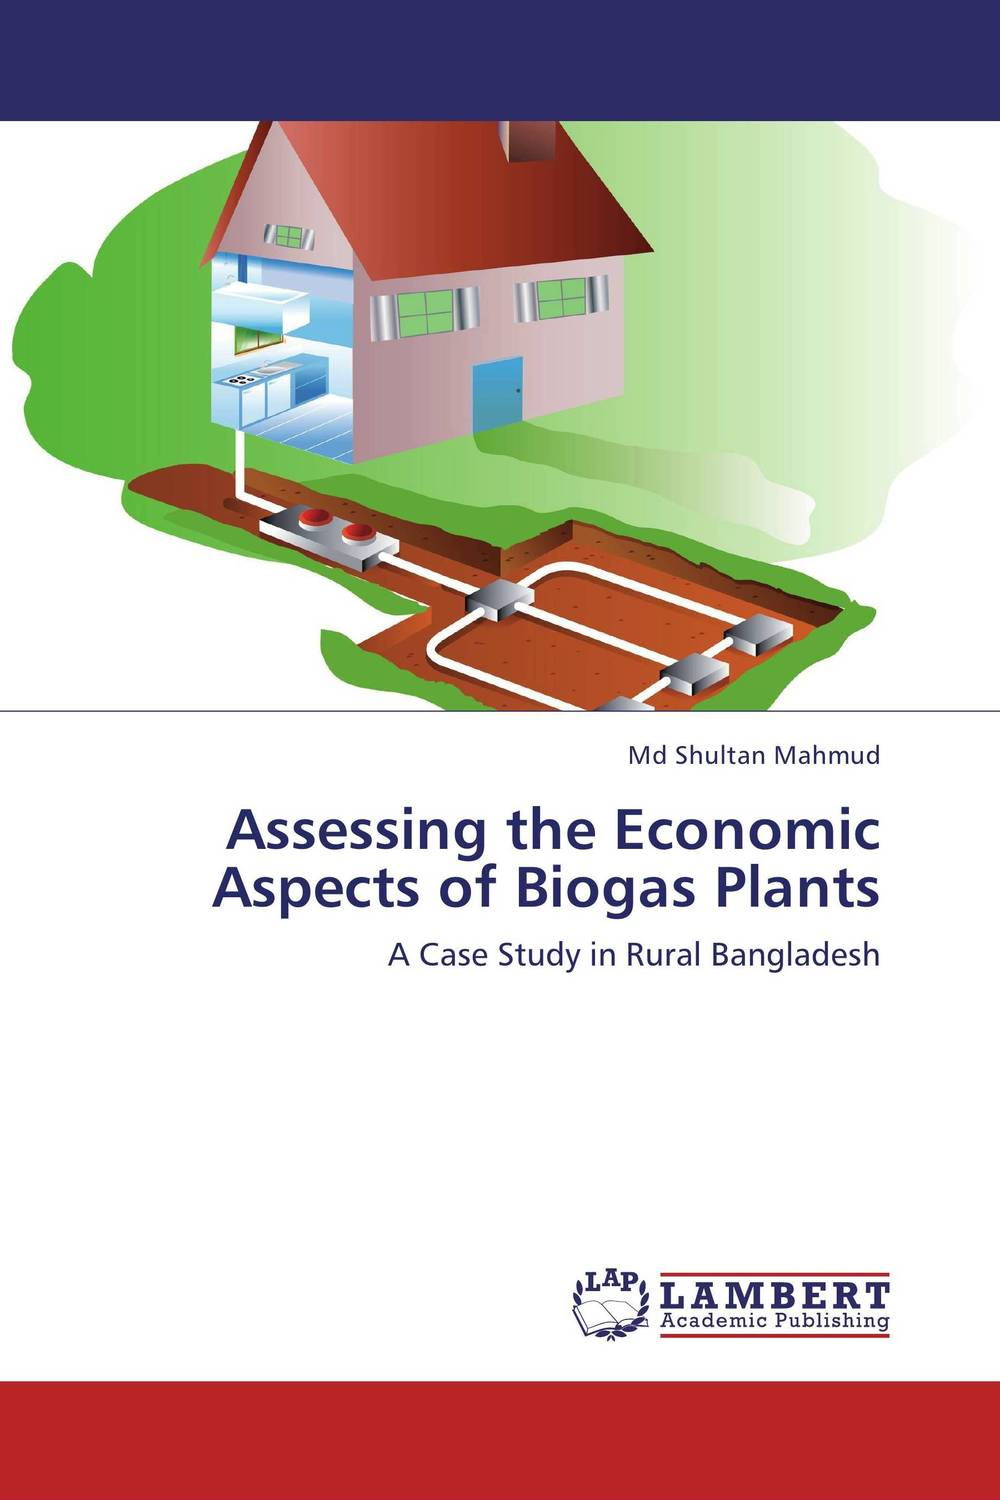 Assessing the Economic Aspects of Biogas Plants assessing the economic aspects of biogas plants